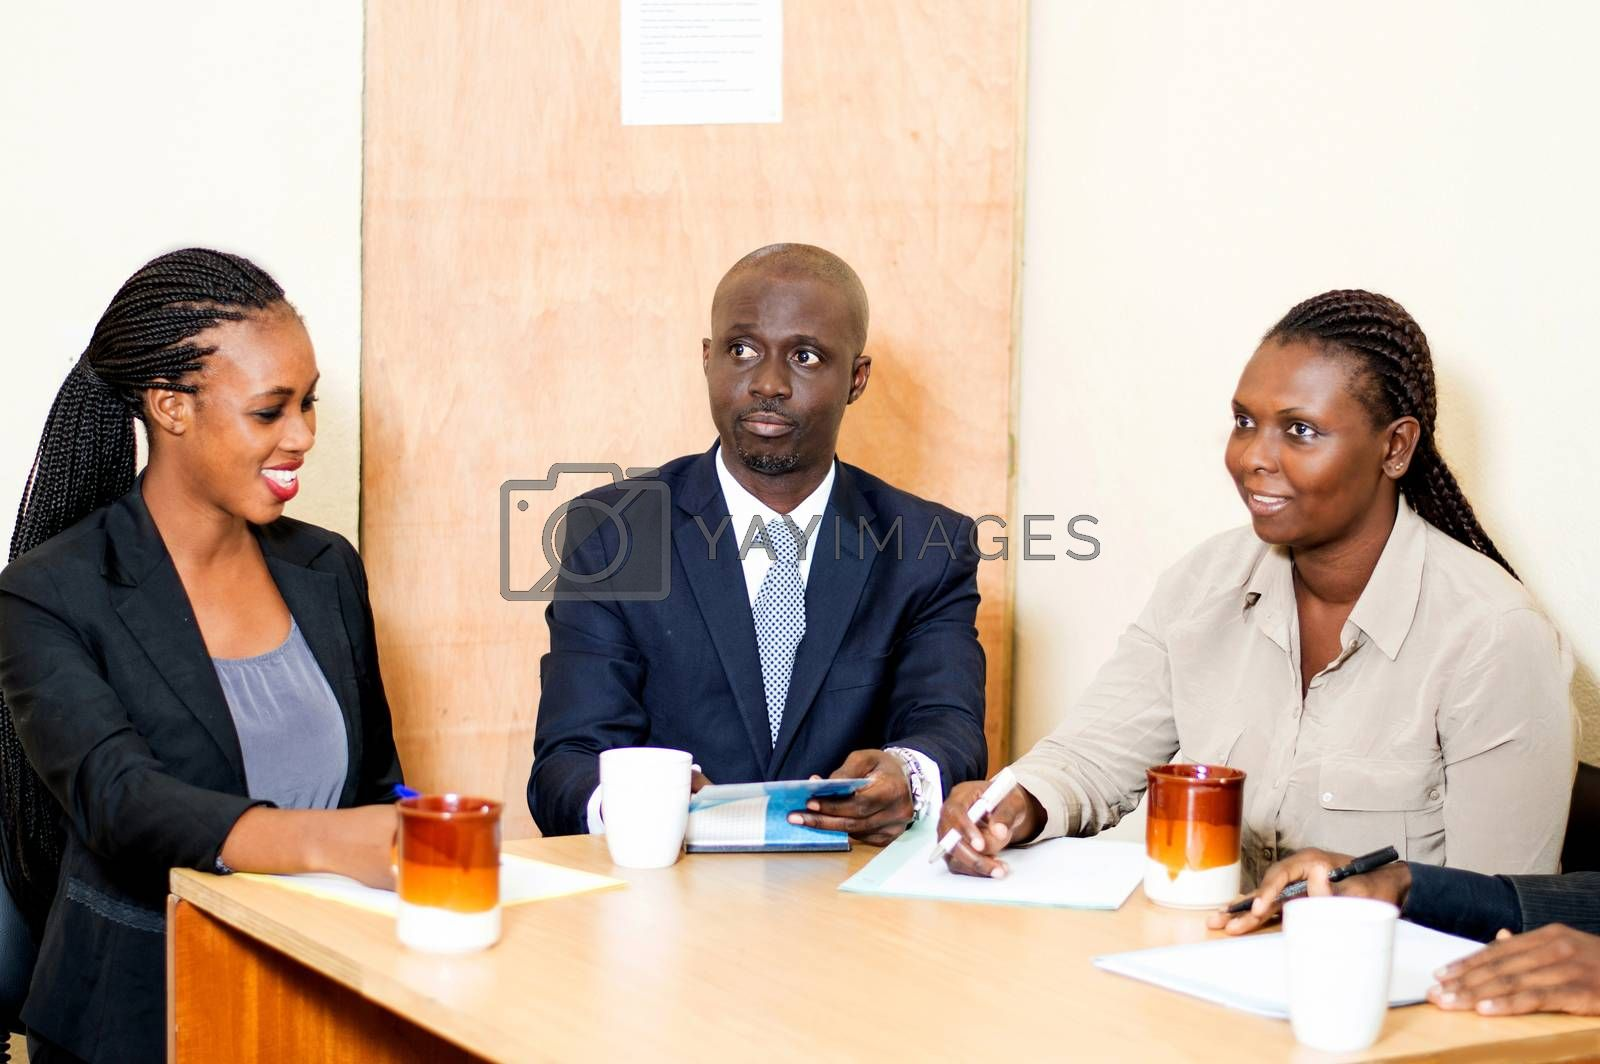 A team of smiling business people meeting  and discussing  with cups of coffee and papers to take notes in front of them